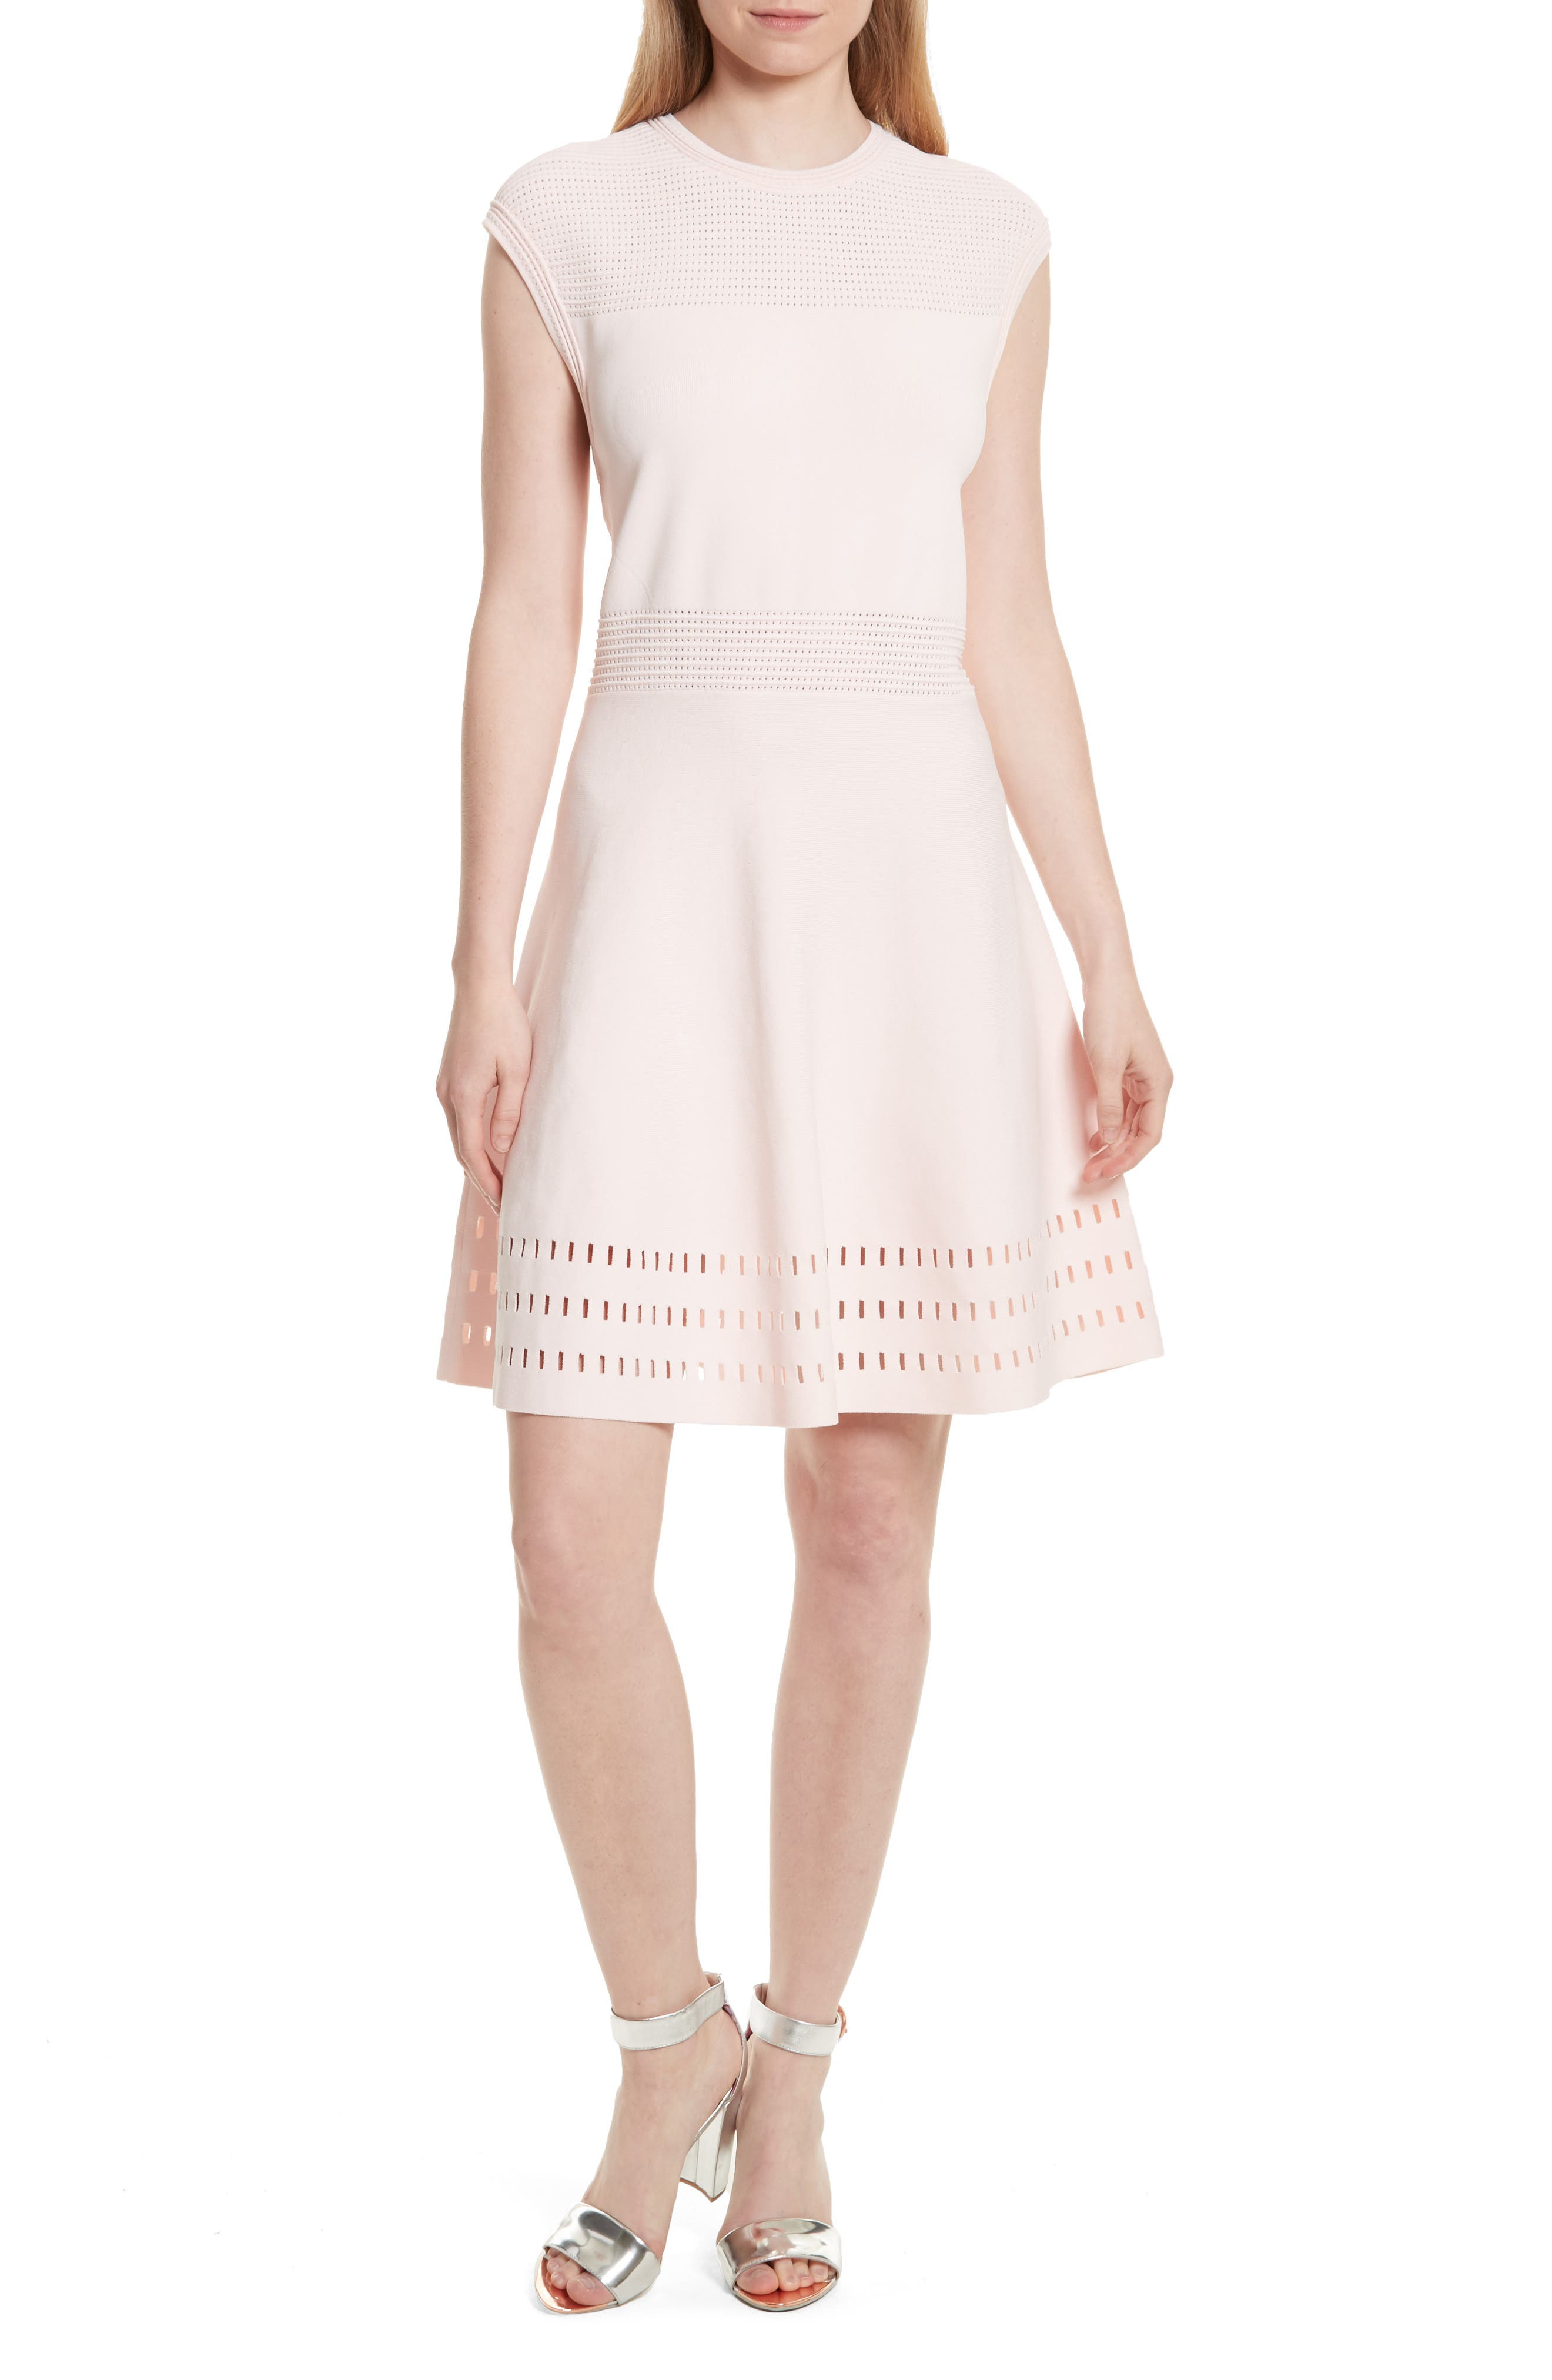 Aurbray Knit Skater Dress,                             Main thumbnail 1, color,                             Nude Pink